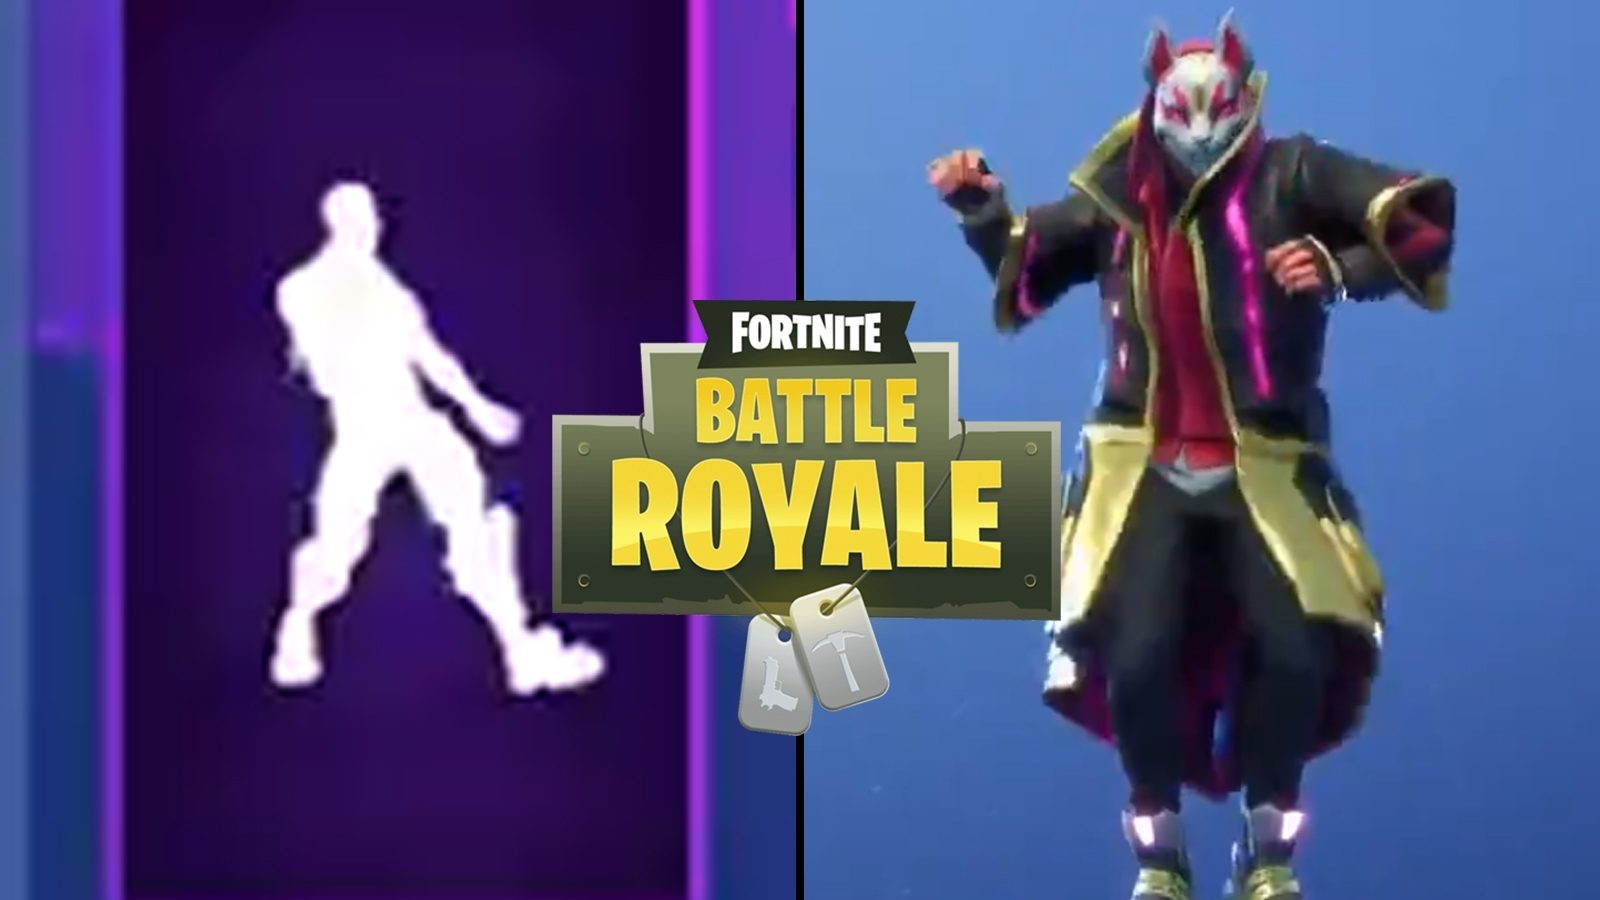 Fortnite boogie down emote on ps4